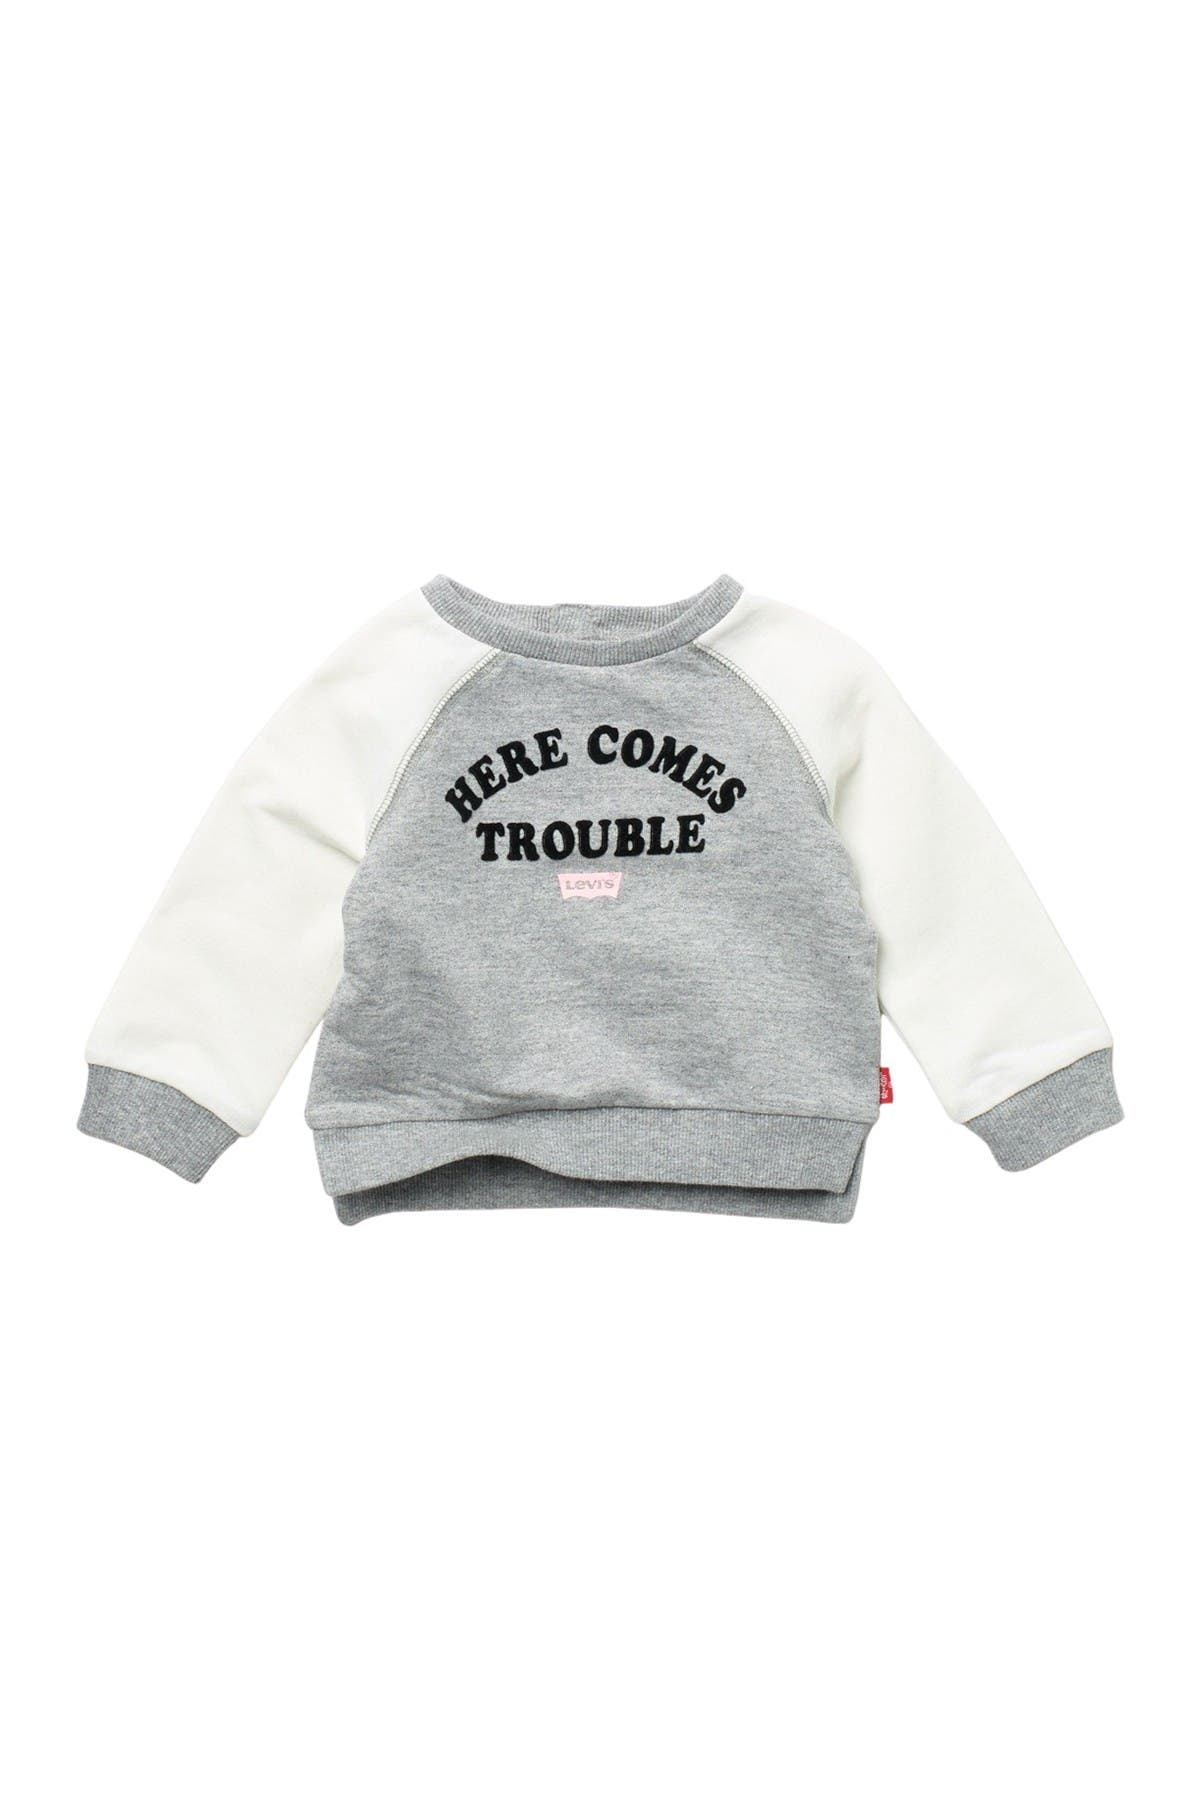 Image of Levi's Here Comes Trouble Crew Neck Sweater (Baby Girls 3-9M)